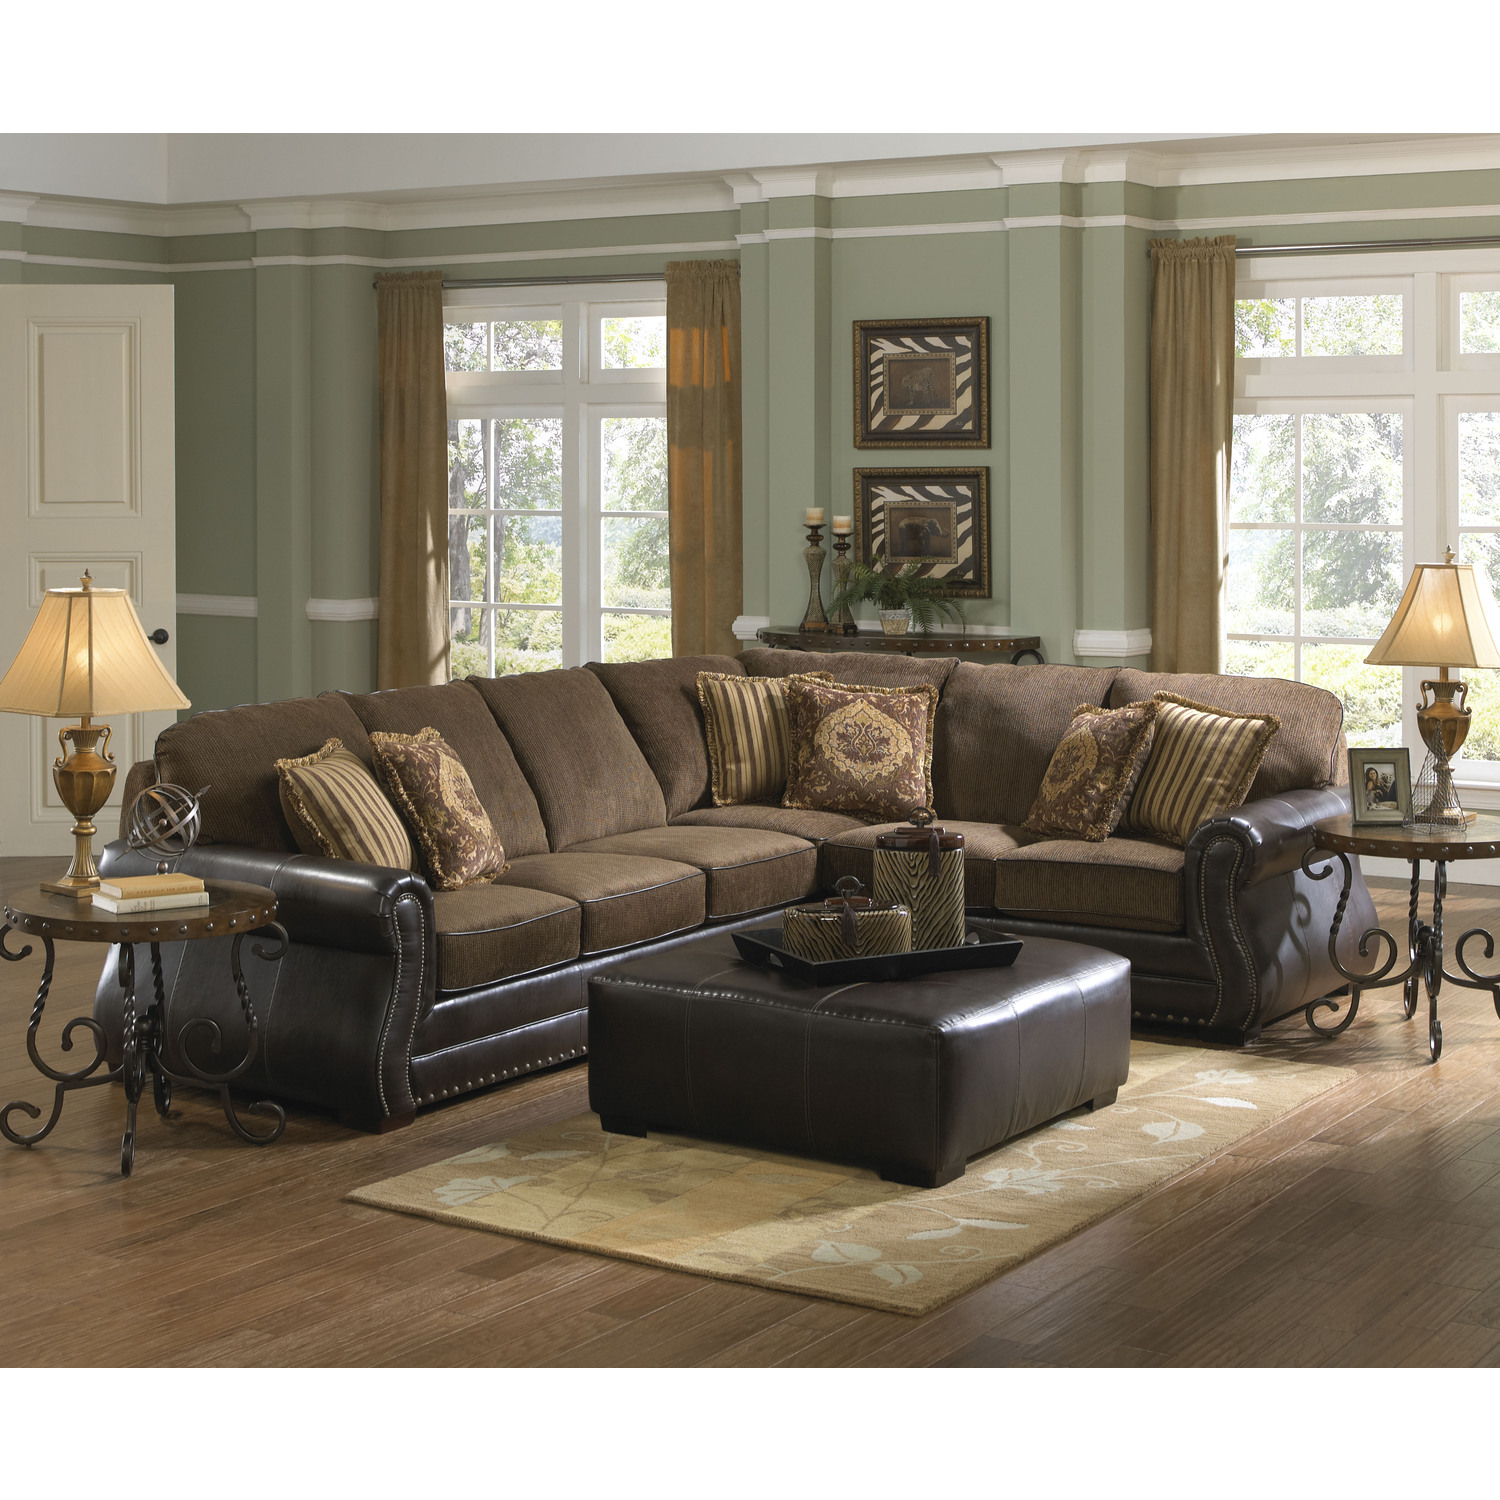 Sectionals austin room ornament for Sectional sofas austin